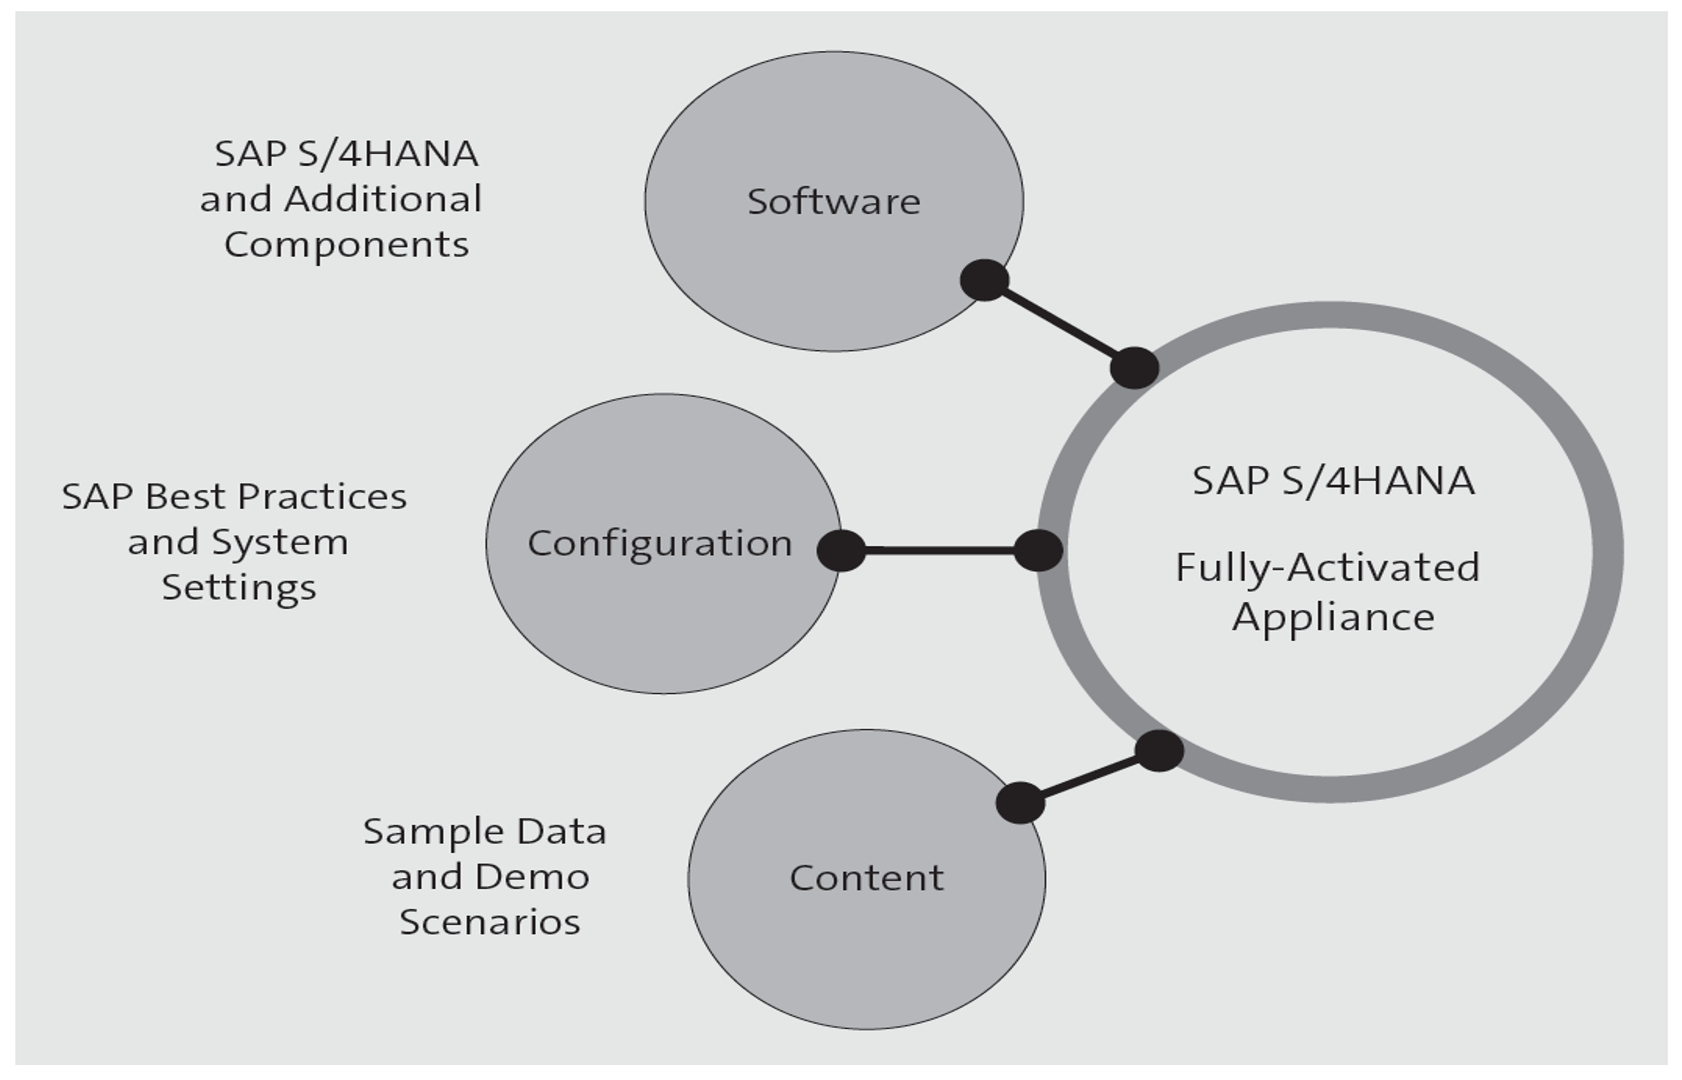 SAP S/4HANA Fully Activated Appliance Concept